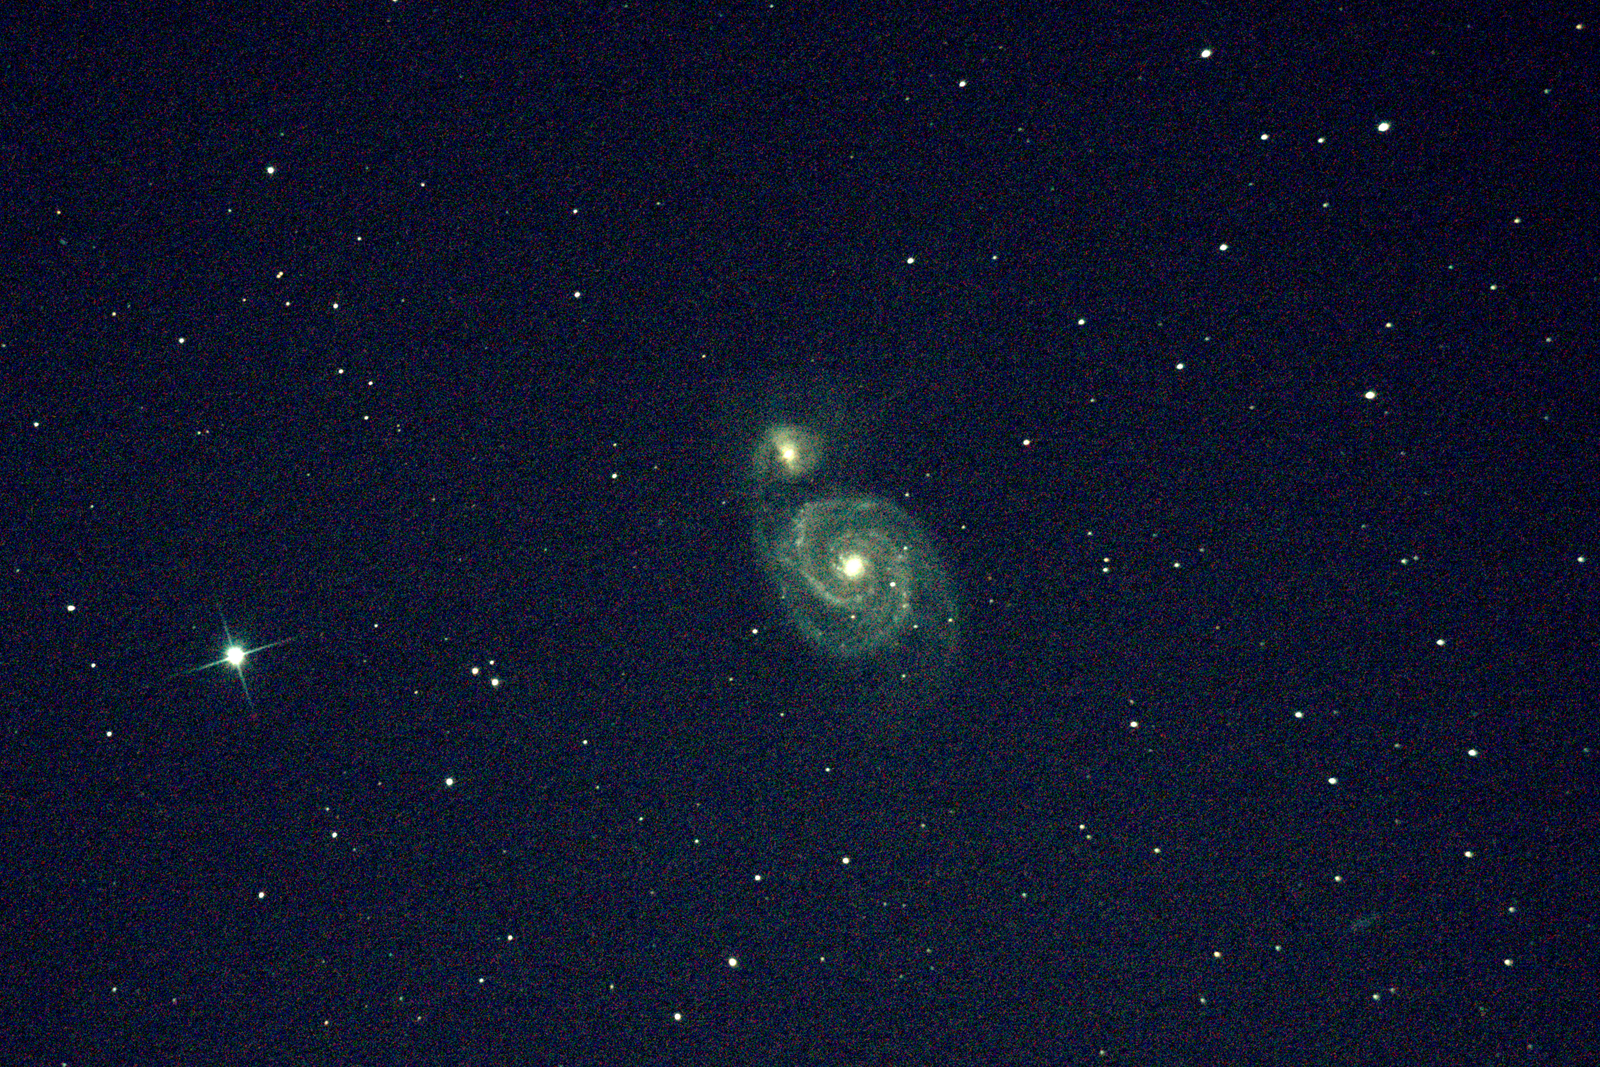 m51_2mn30s_iso800_stacked_color_corrected_stretched_cropped.png